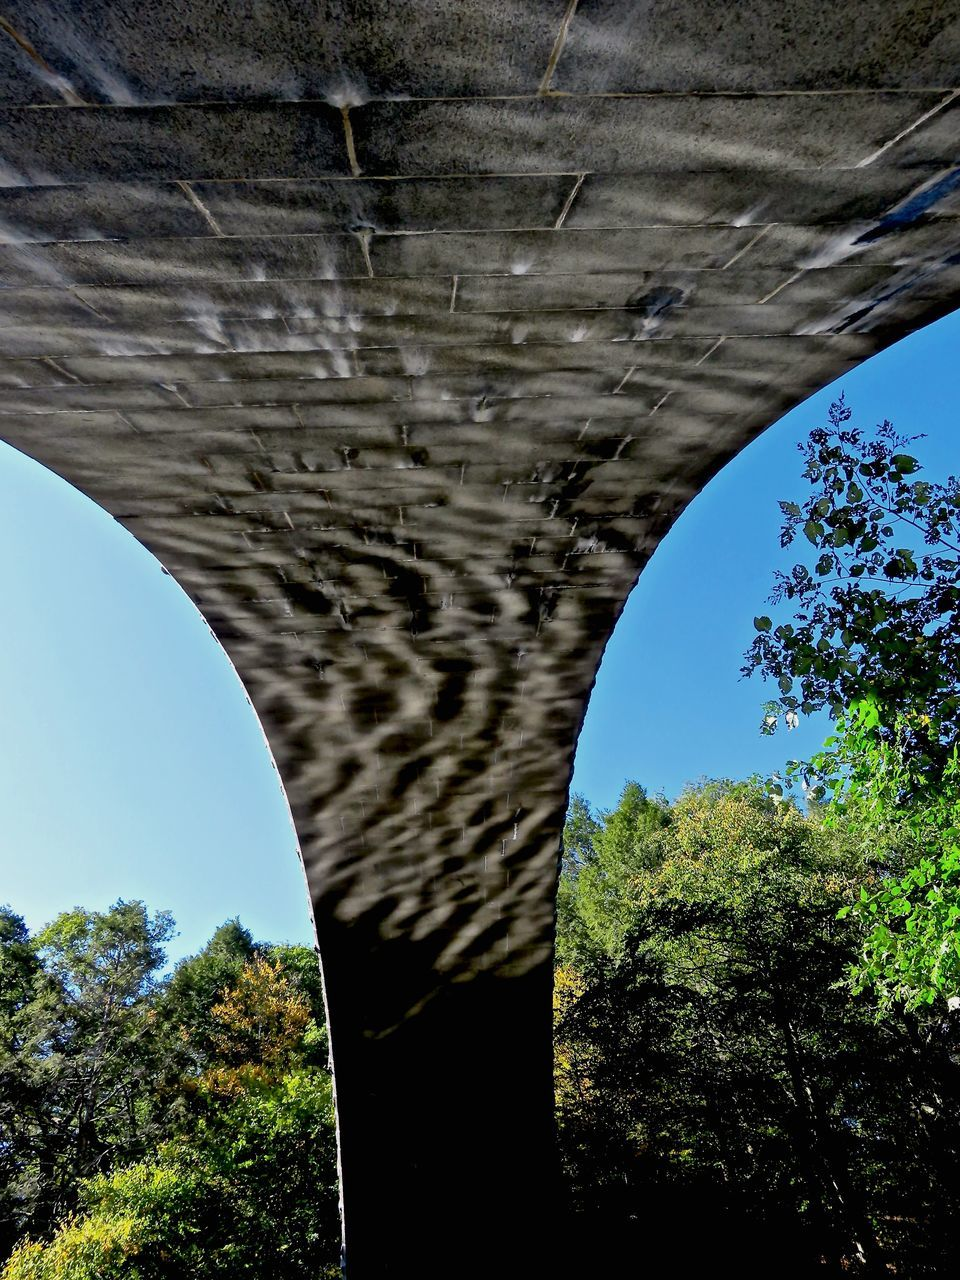 connection, bridge - man made structure, tree, low angle view, day, architecture, arch, below, no people, built structure, nature, sunlight, transportation, under, outdoors, bridge, underneath, sky